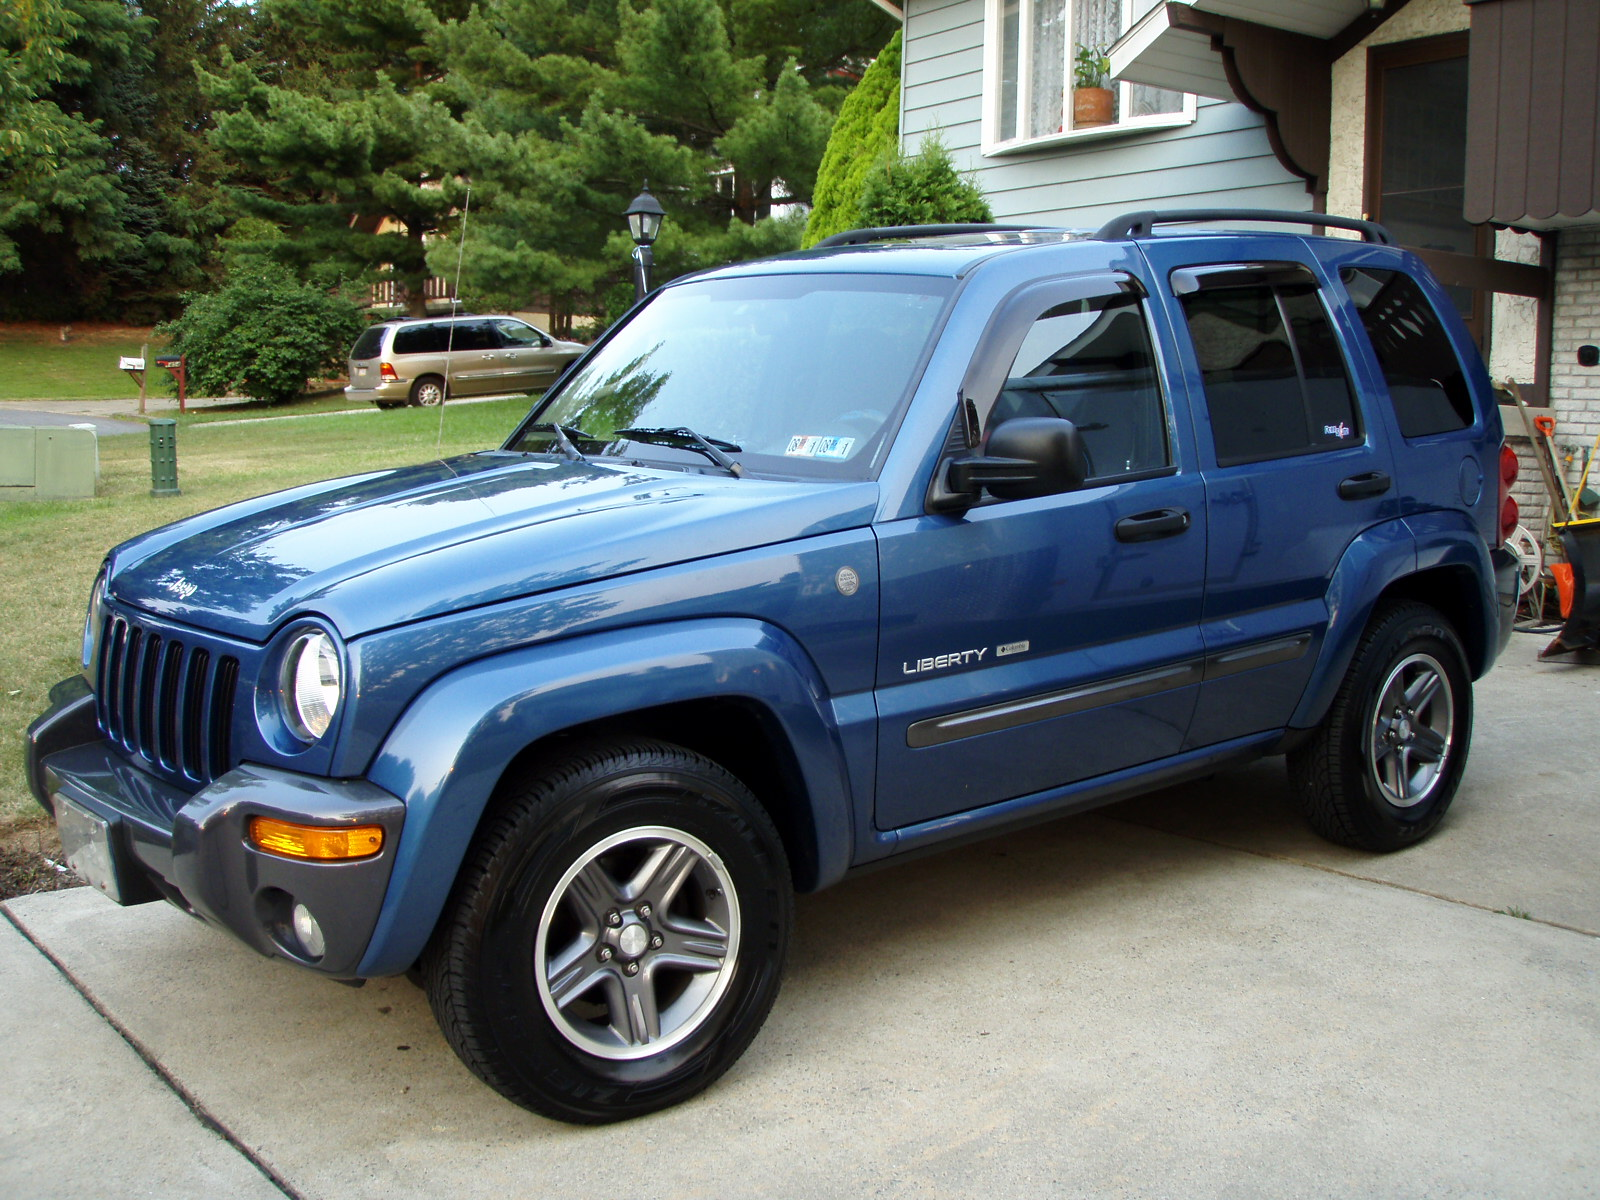 2004 Jeep Liberty Columbia Edition 4WD picture